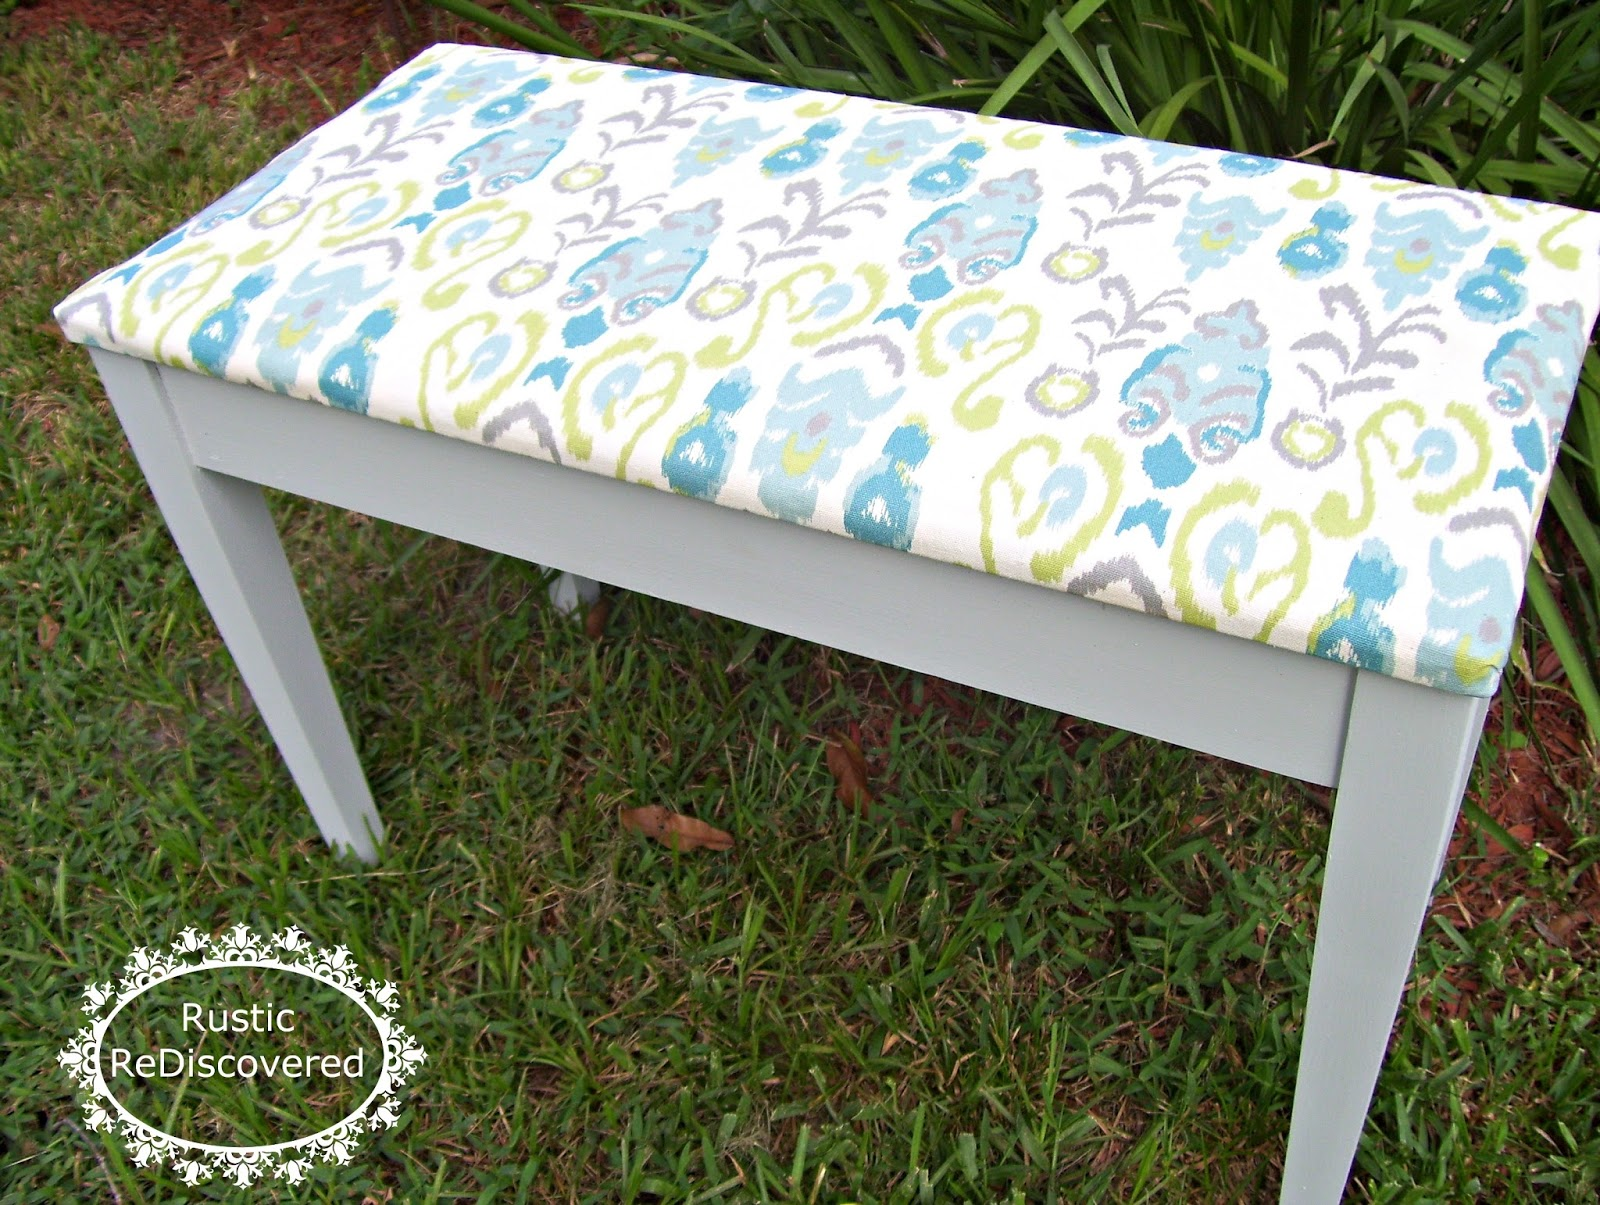 Rustic ReDiscovered: Piano Bench Makeover